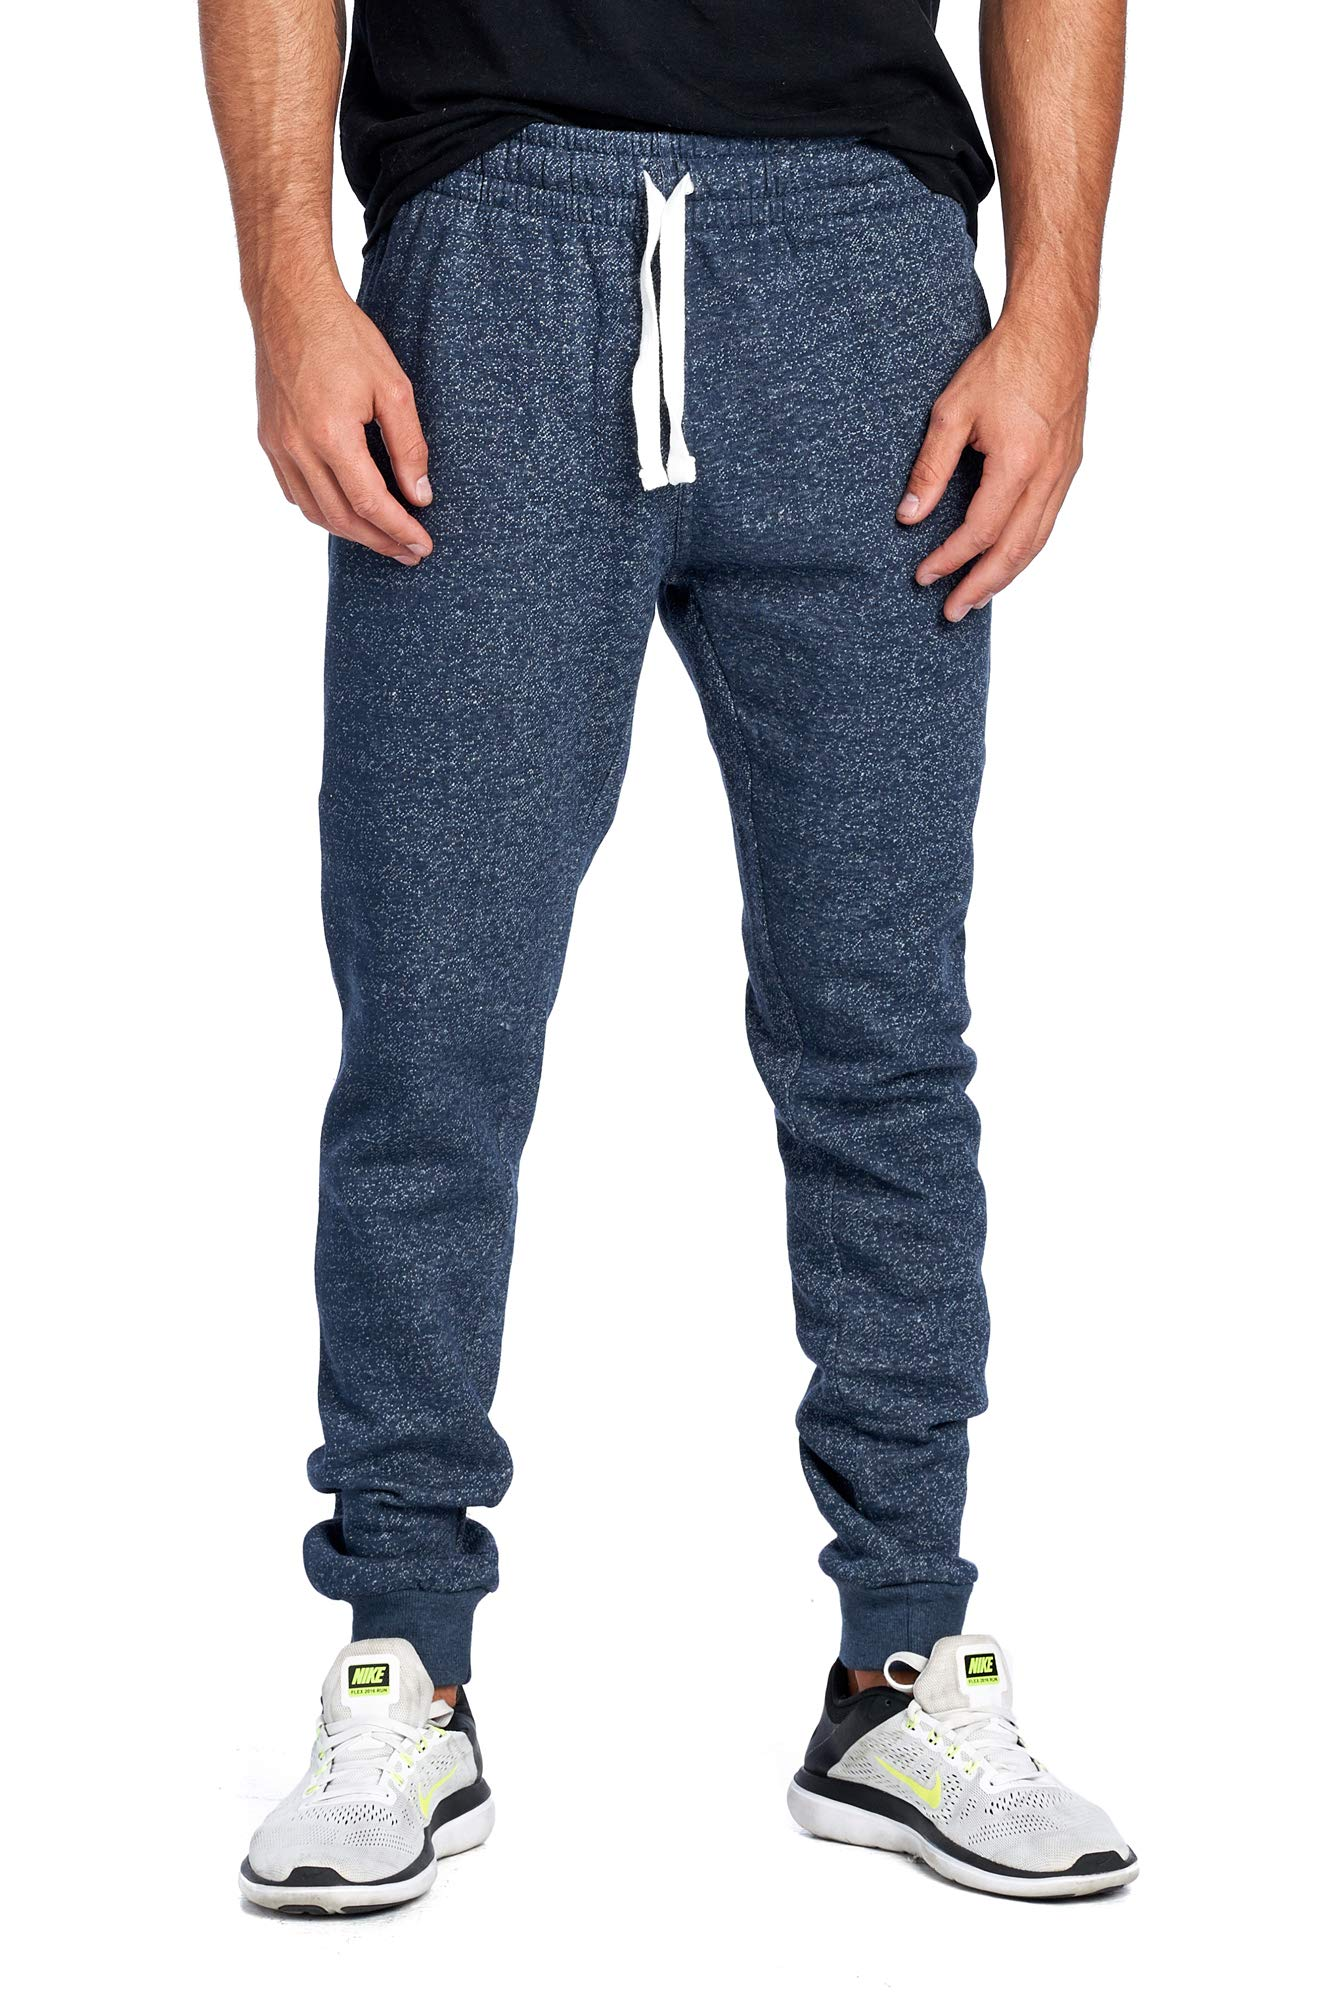 ProGo Men's Joggers Sweatpants Basic Fleece Marled Jogger Pant Elastic Waist (2X-Large, Marled Navy) by PROGO USA